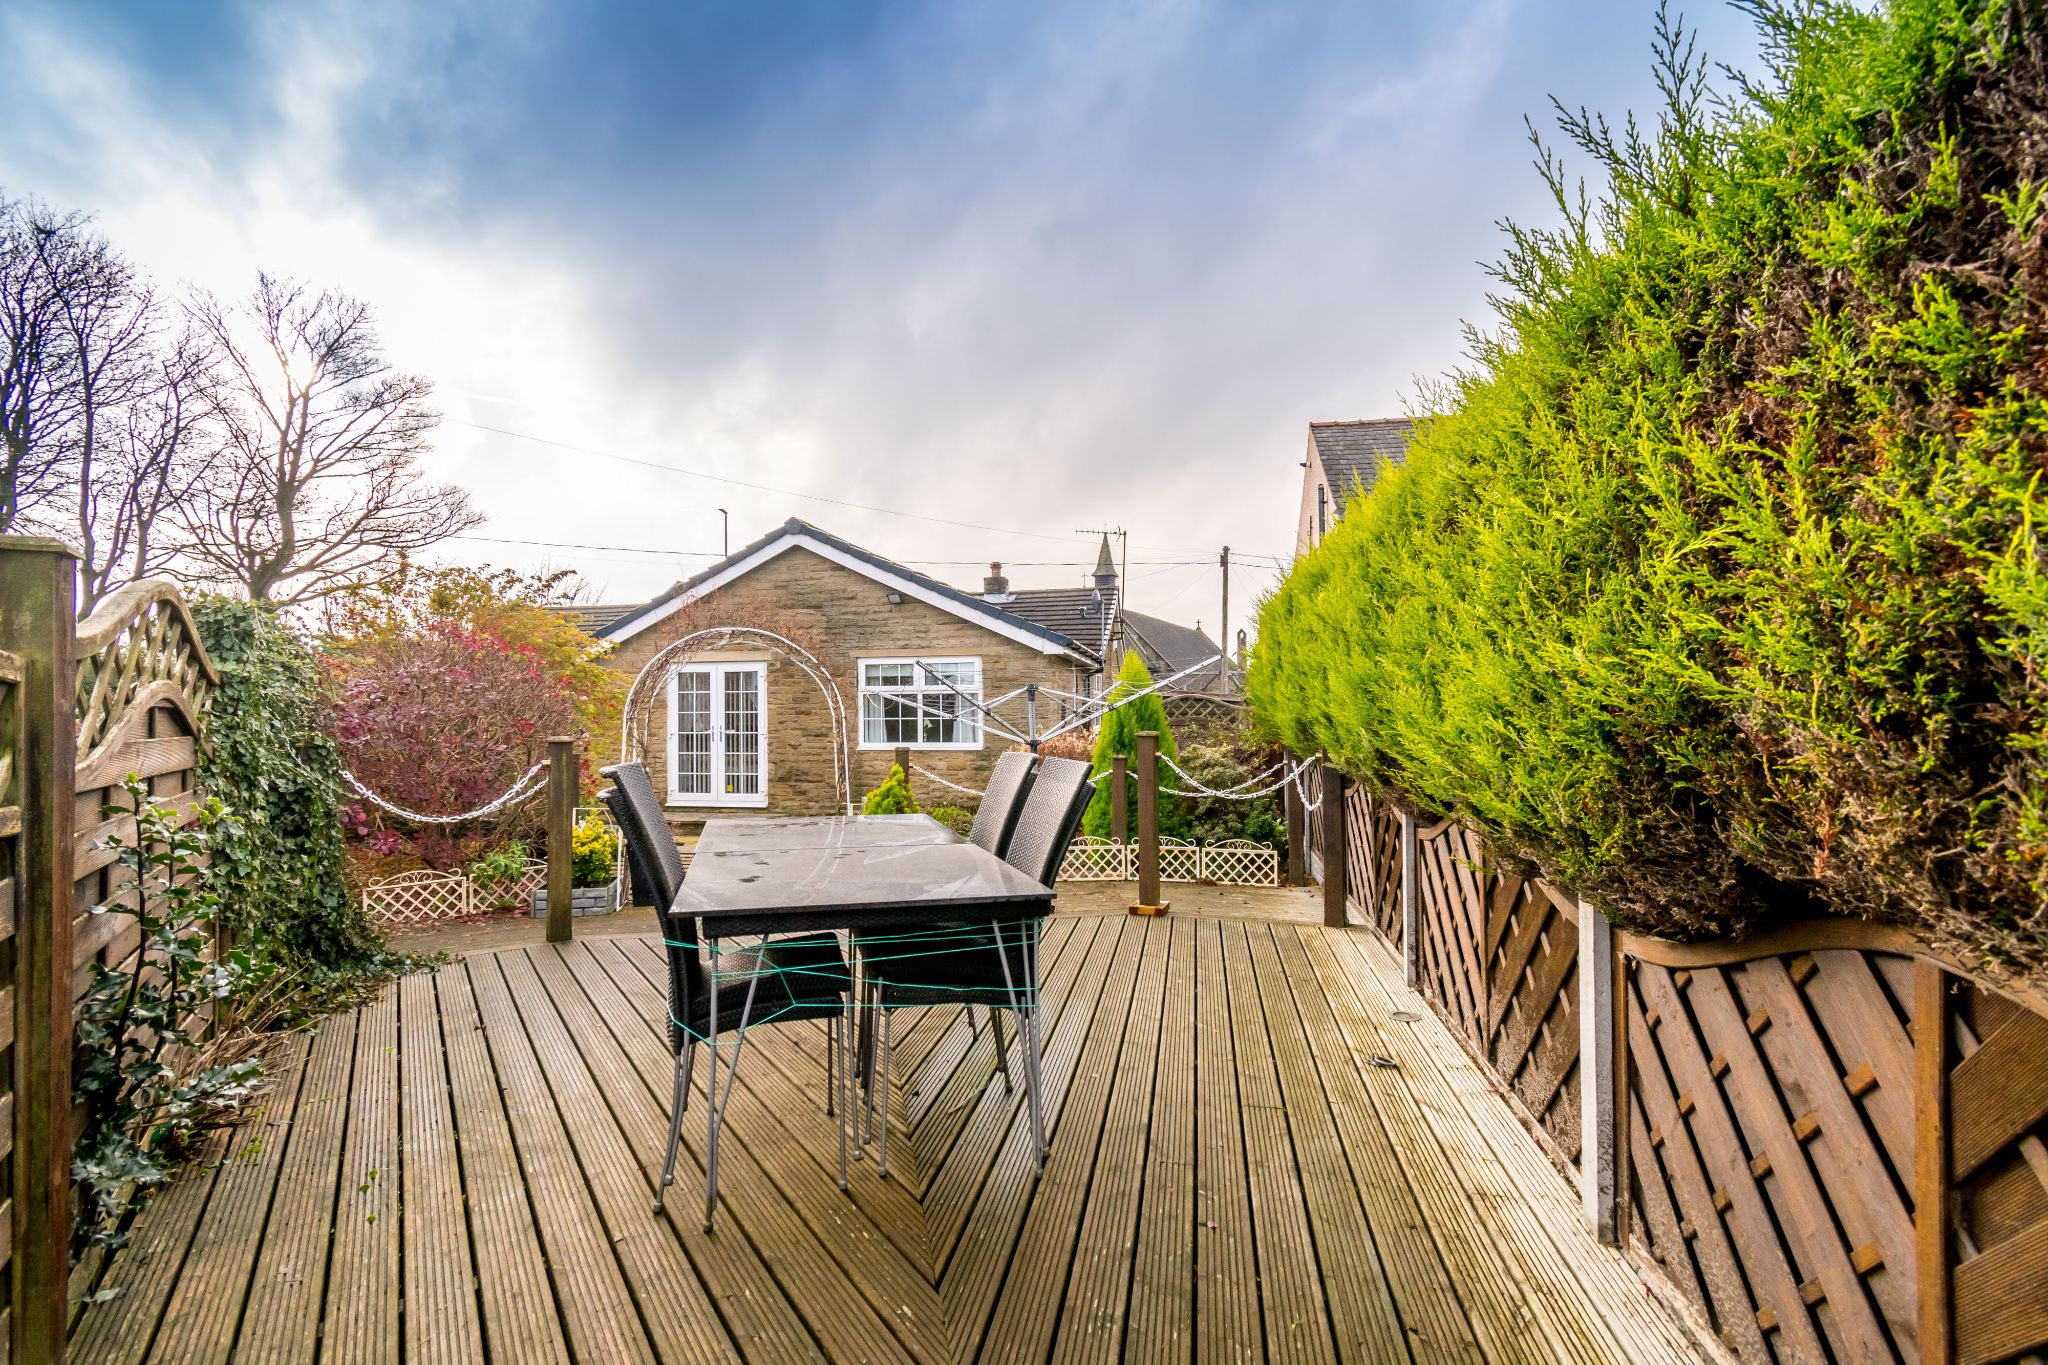 3 bedroom detached bungalow For Sale in Hove Edge - Seating area